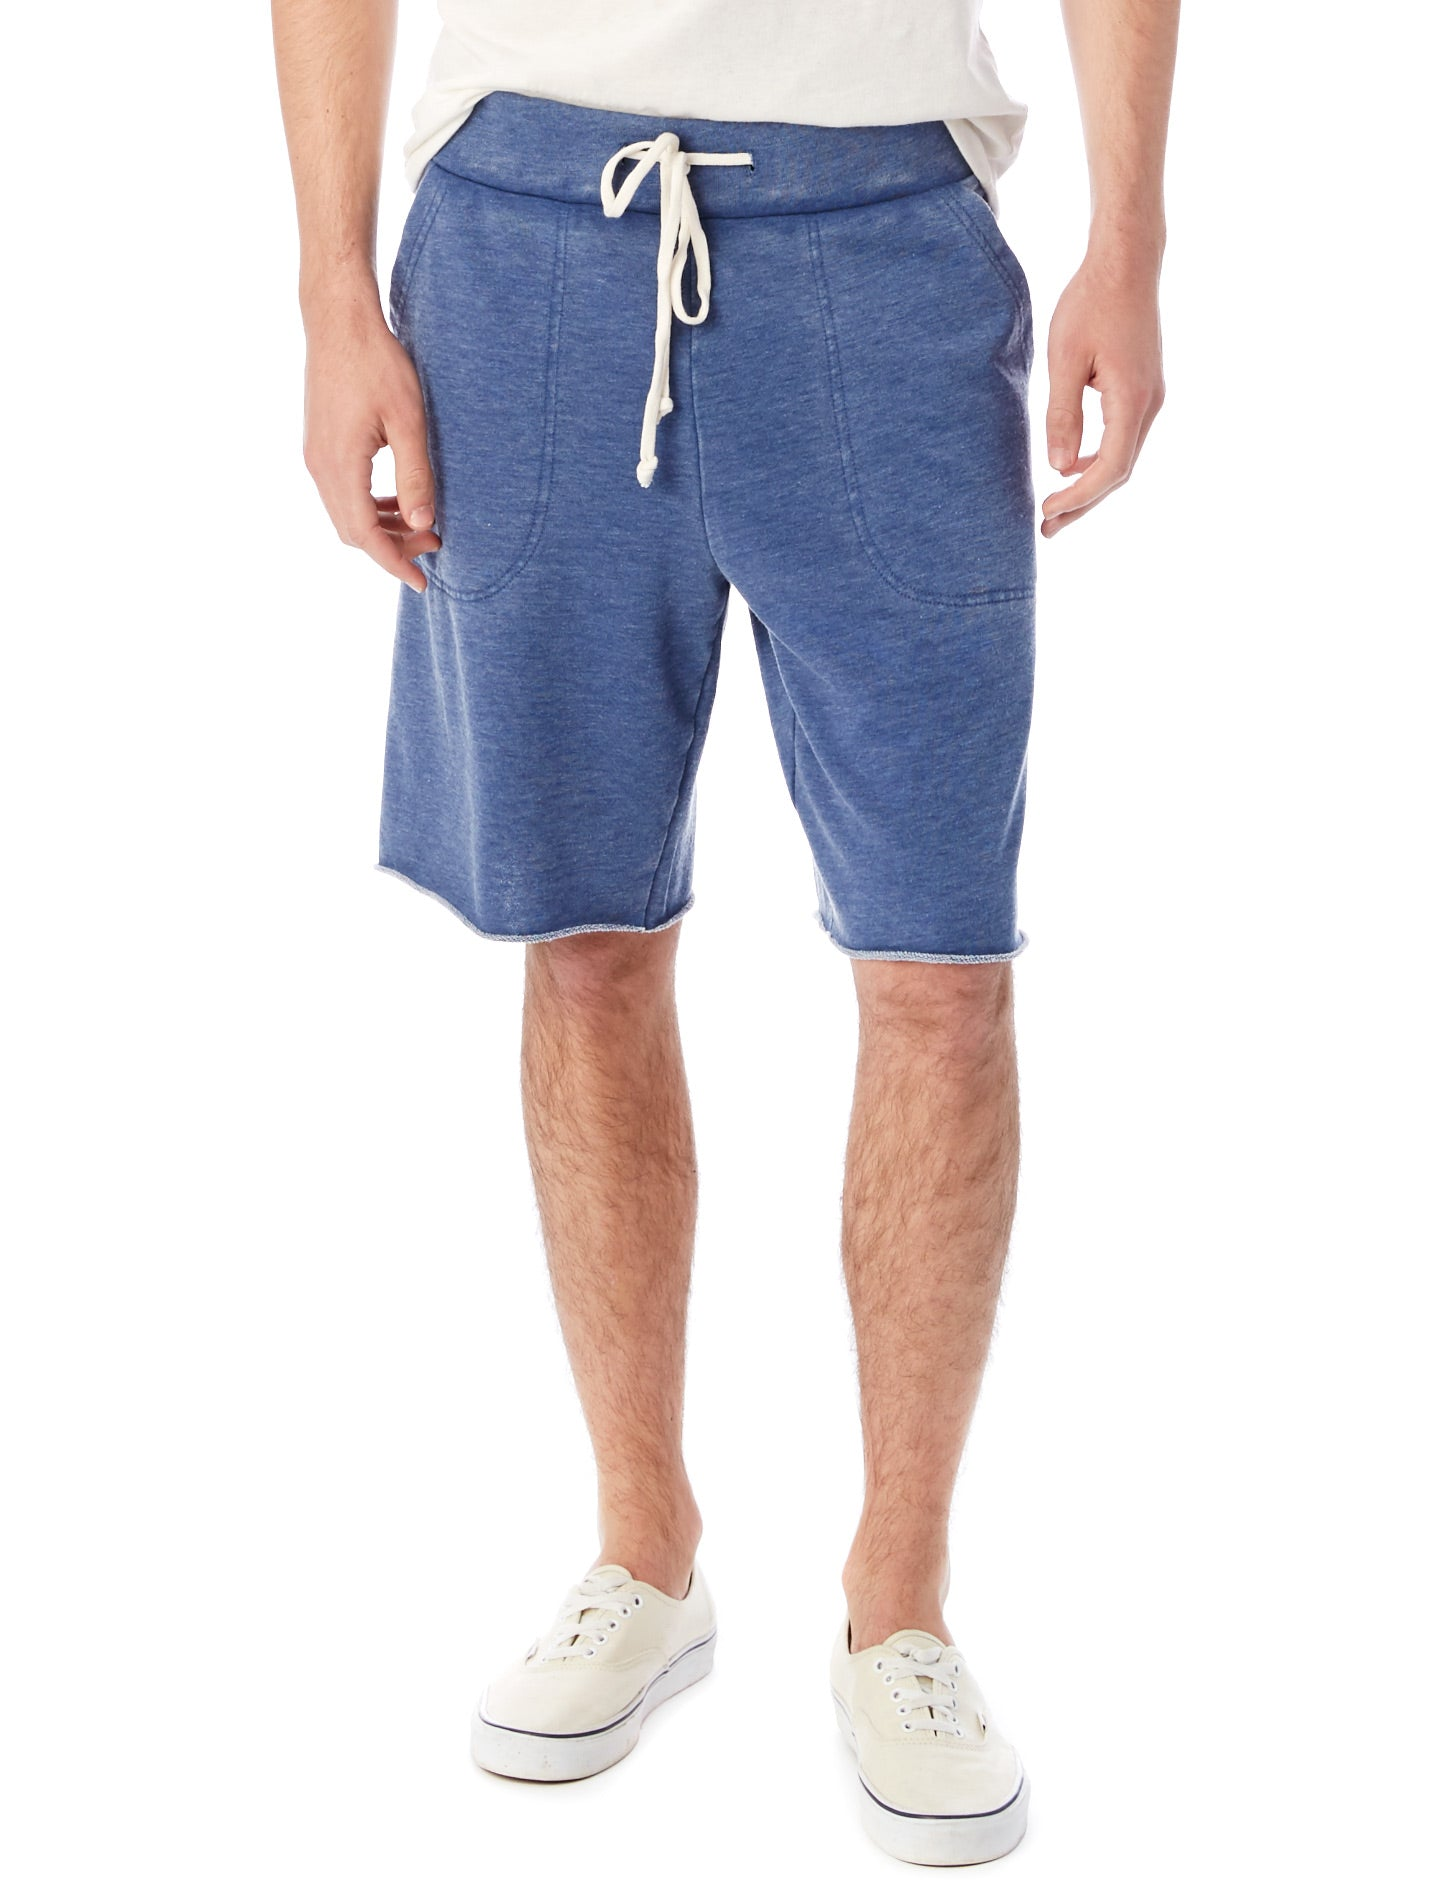 Mens Casual Navy French Terry Shorts